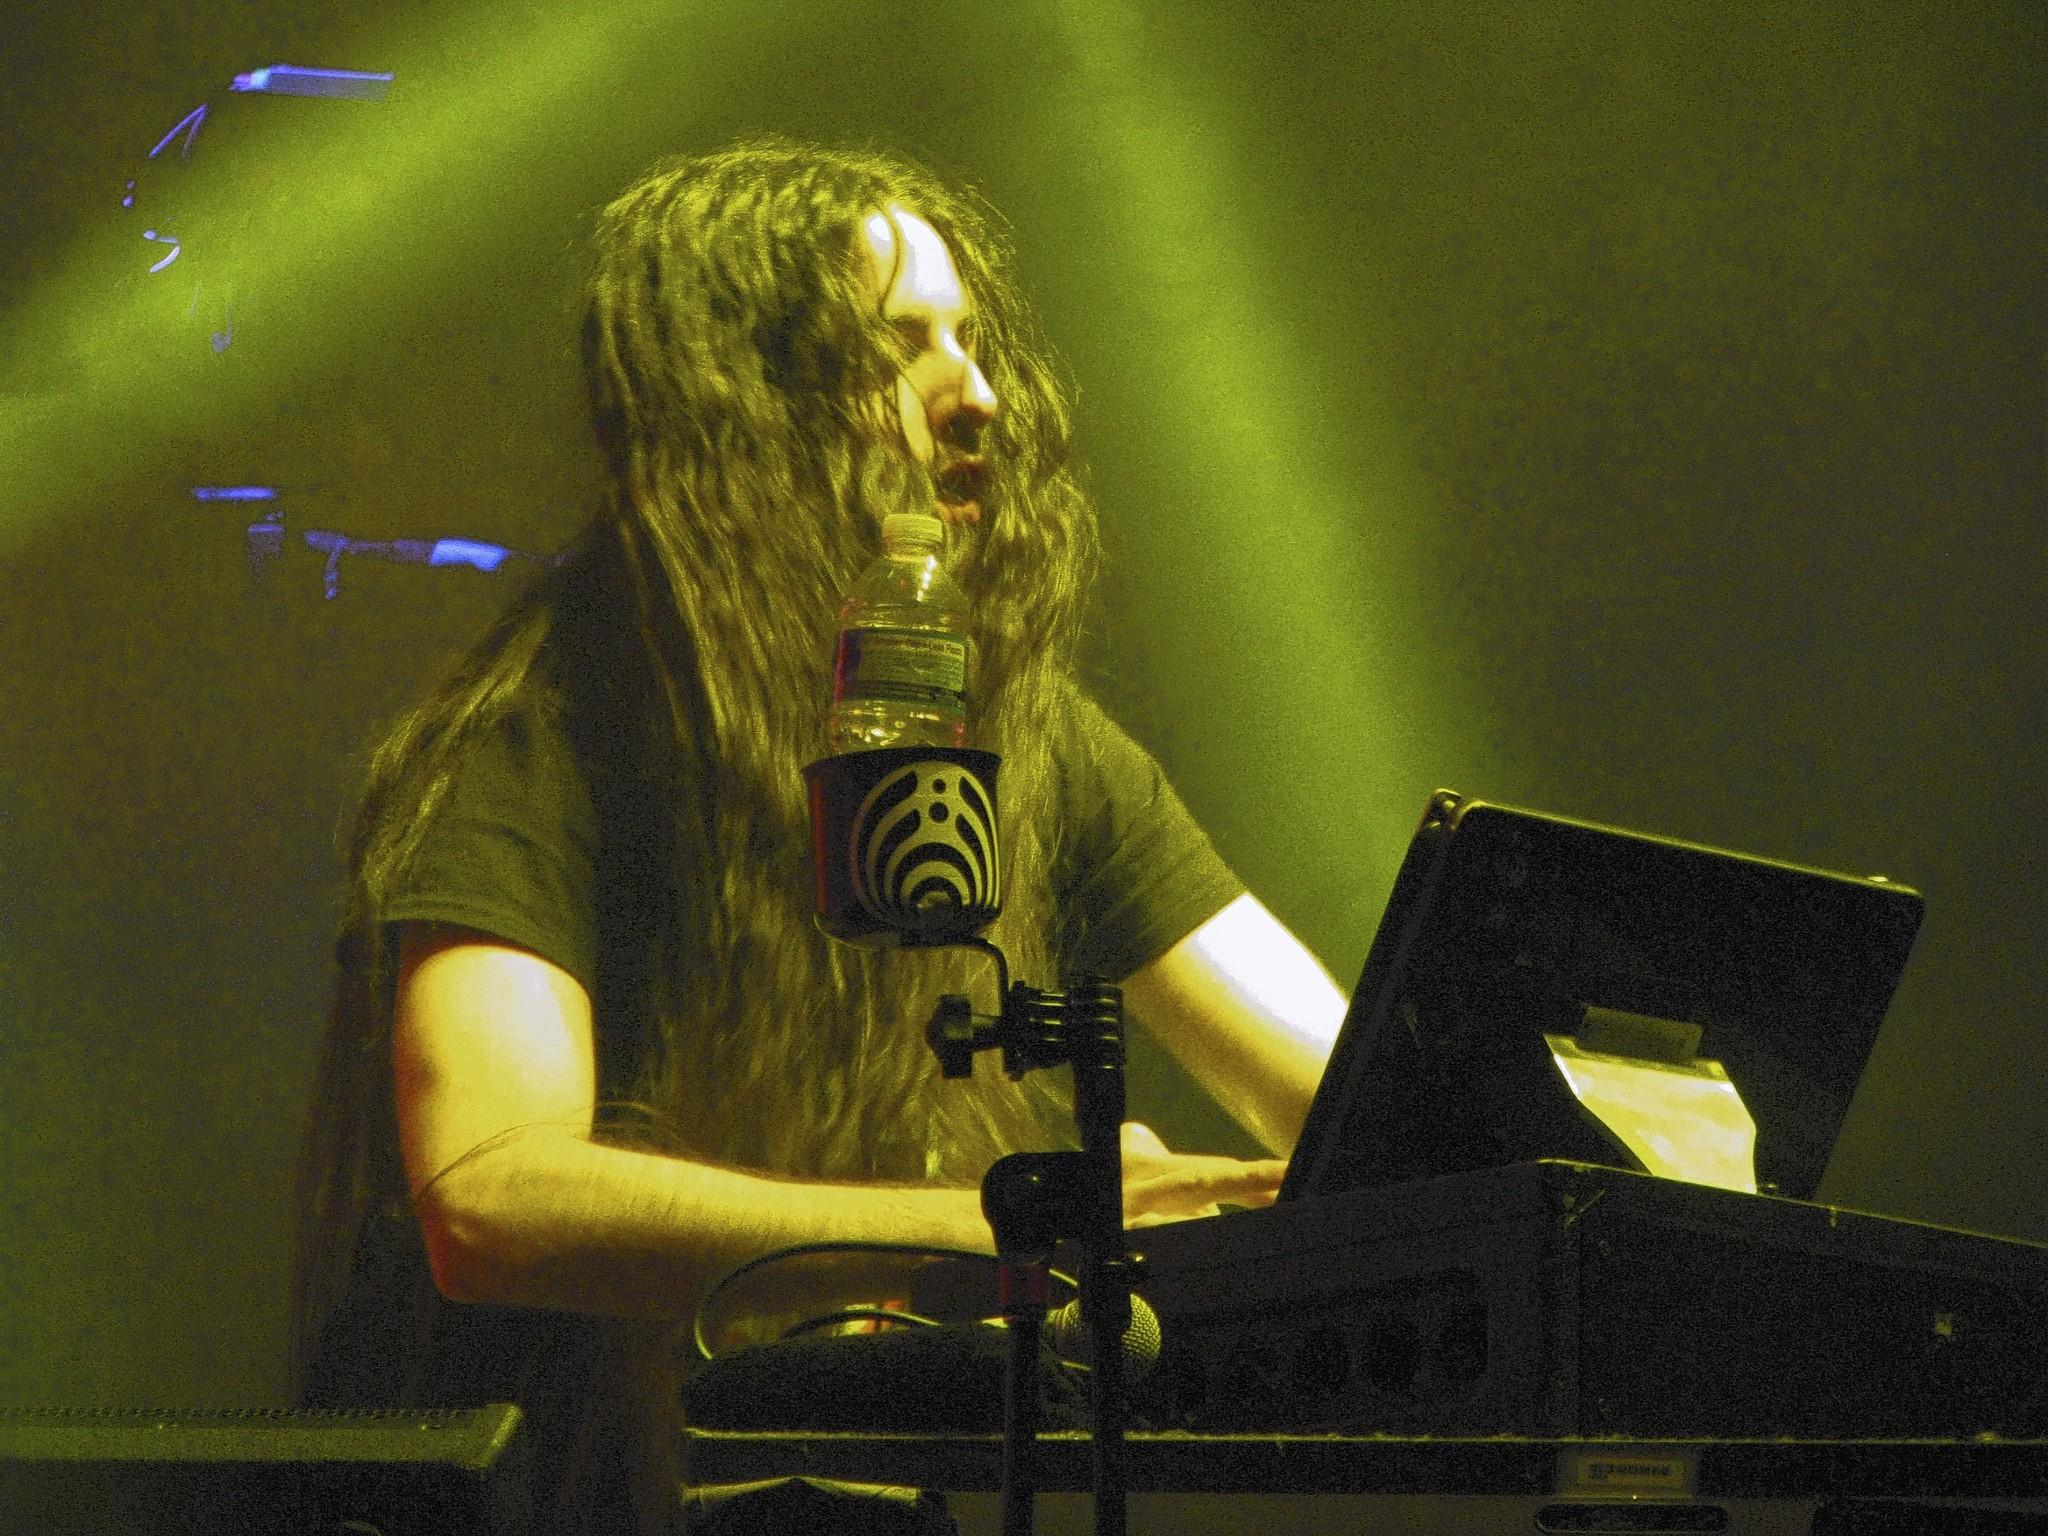 Bassnectar performs for a big crowd at Hampton Coliseum in December 2012.